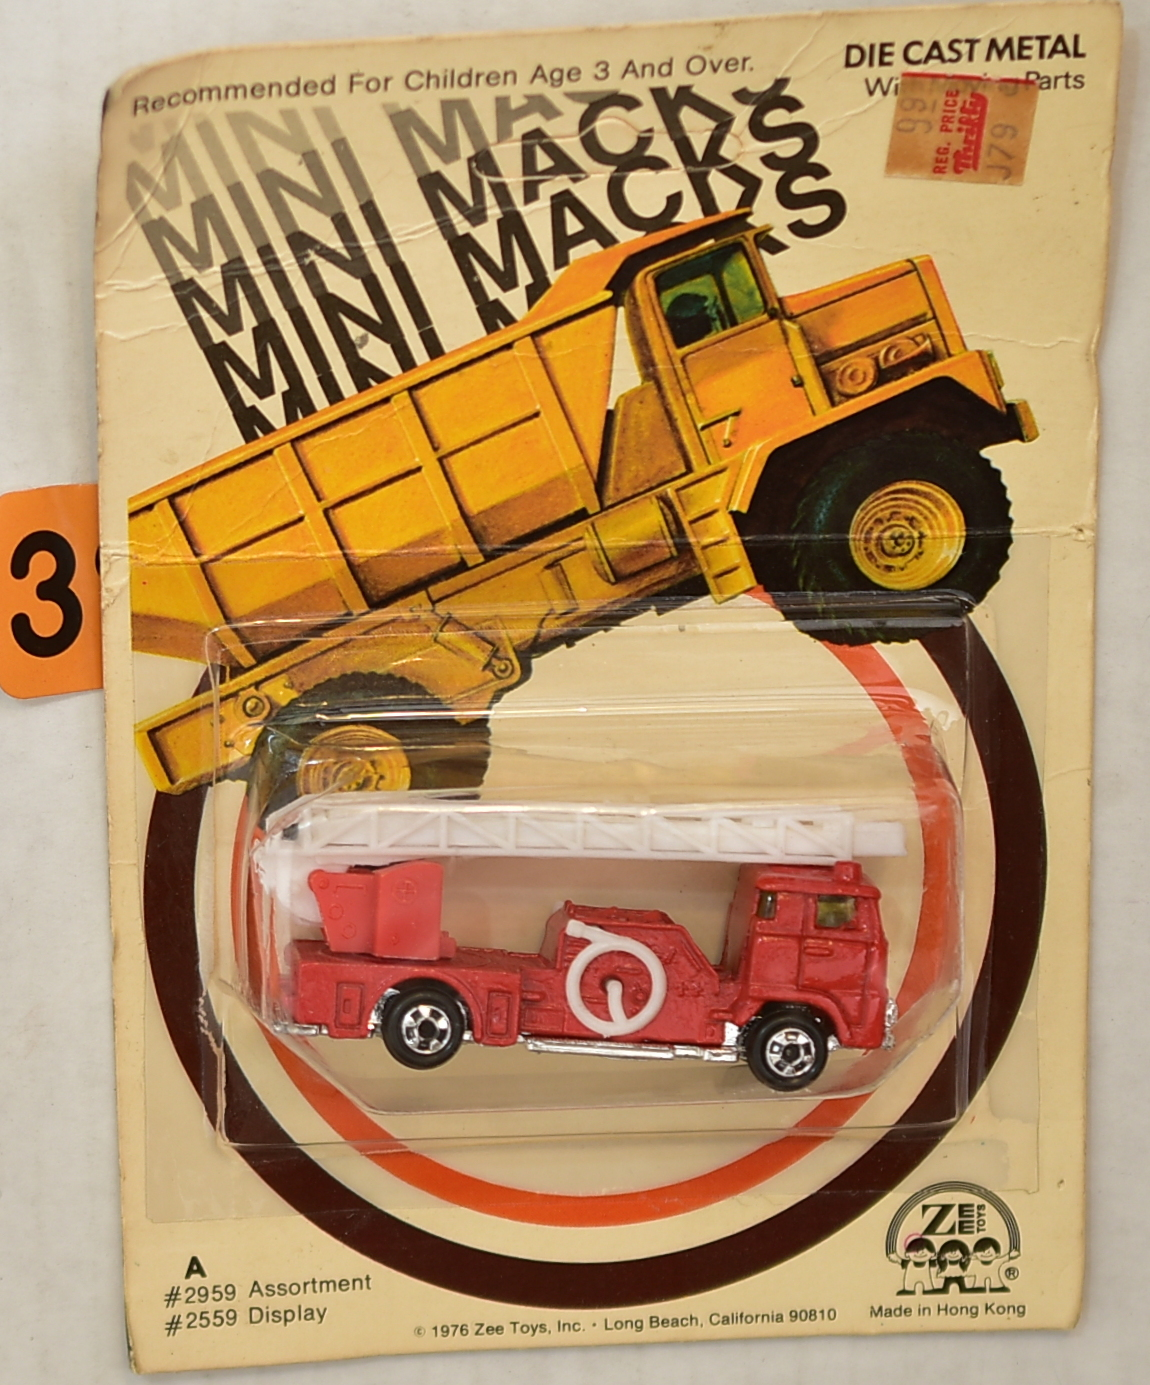 ZEETOYS MINI MACKS FIRE ENGINE